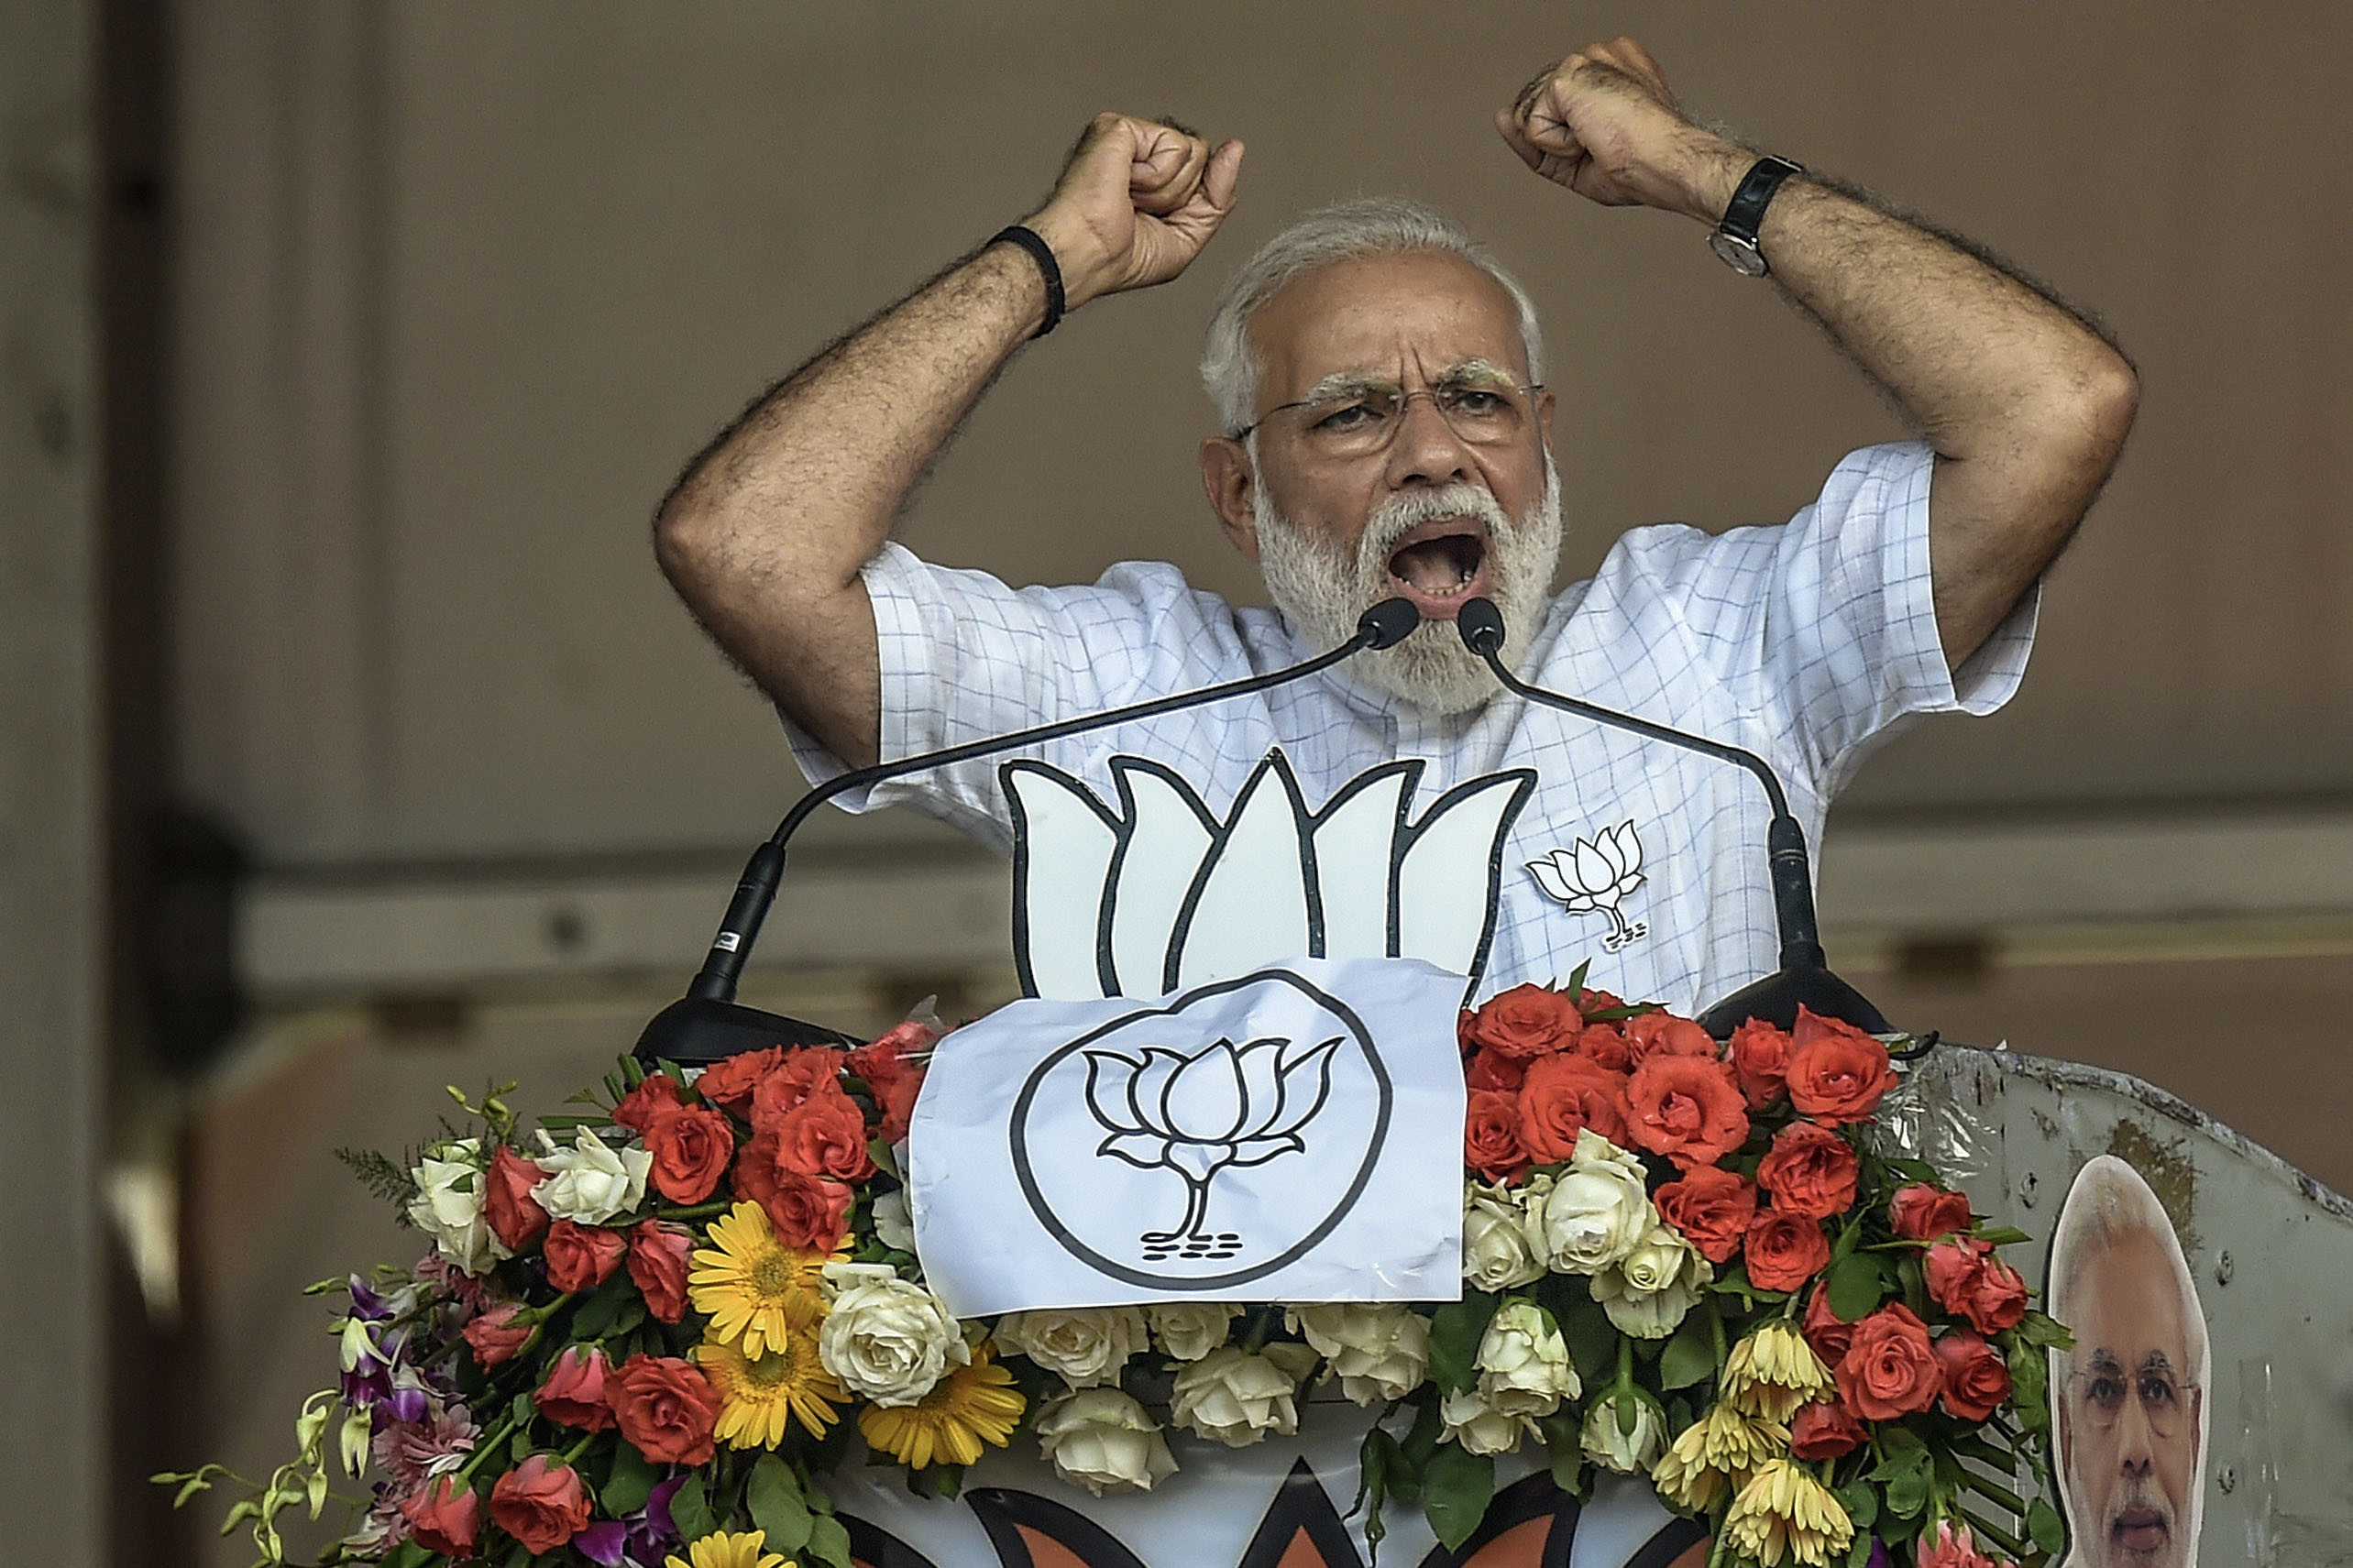 3 April 2019: Indian Prime Minister Narendra Modi speaks at the public rally at Brigade ground in Kolkata, India. Around 900 million people will vote during India's general election, from 11 April to 19 May. (Photograph by Atul Loke/Getty Images)